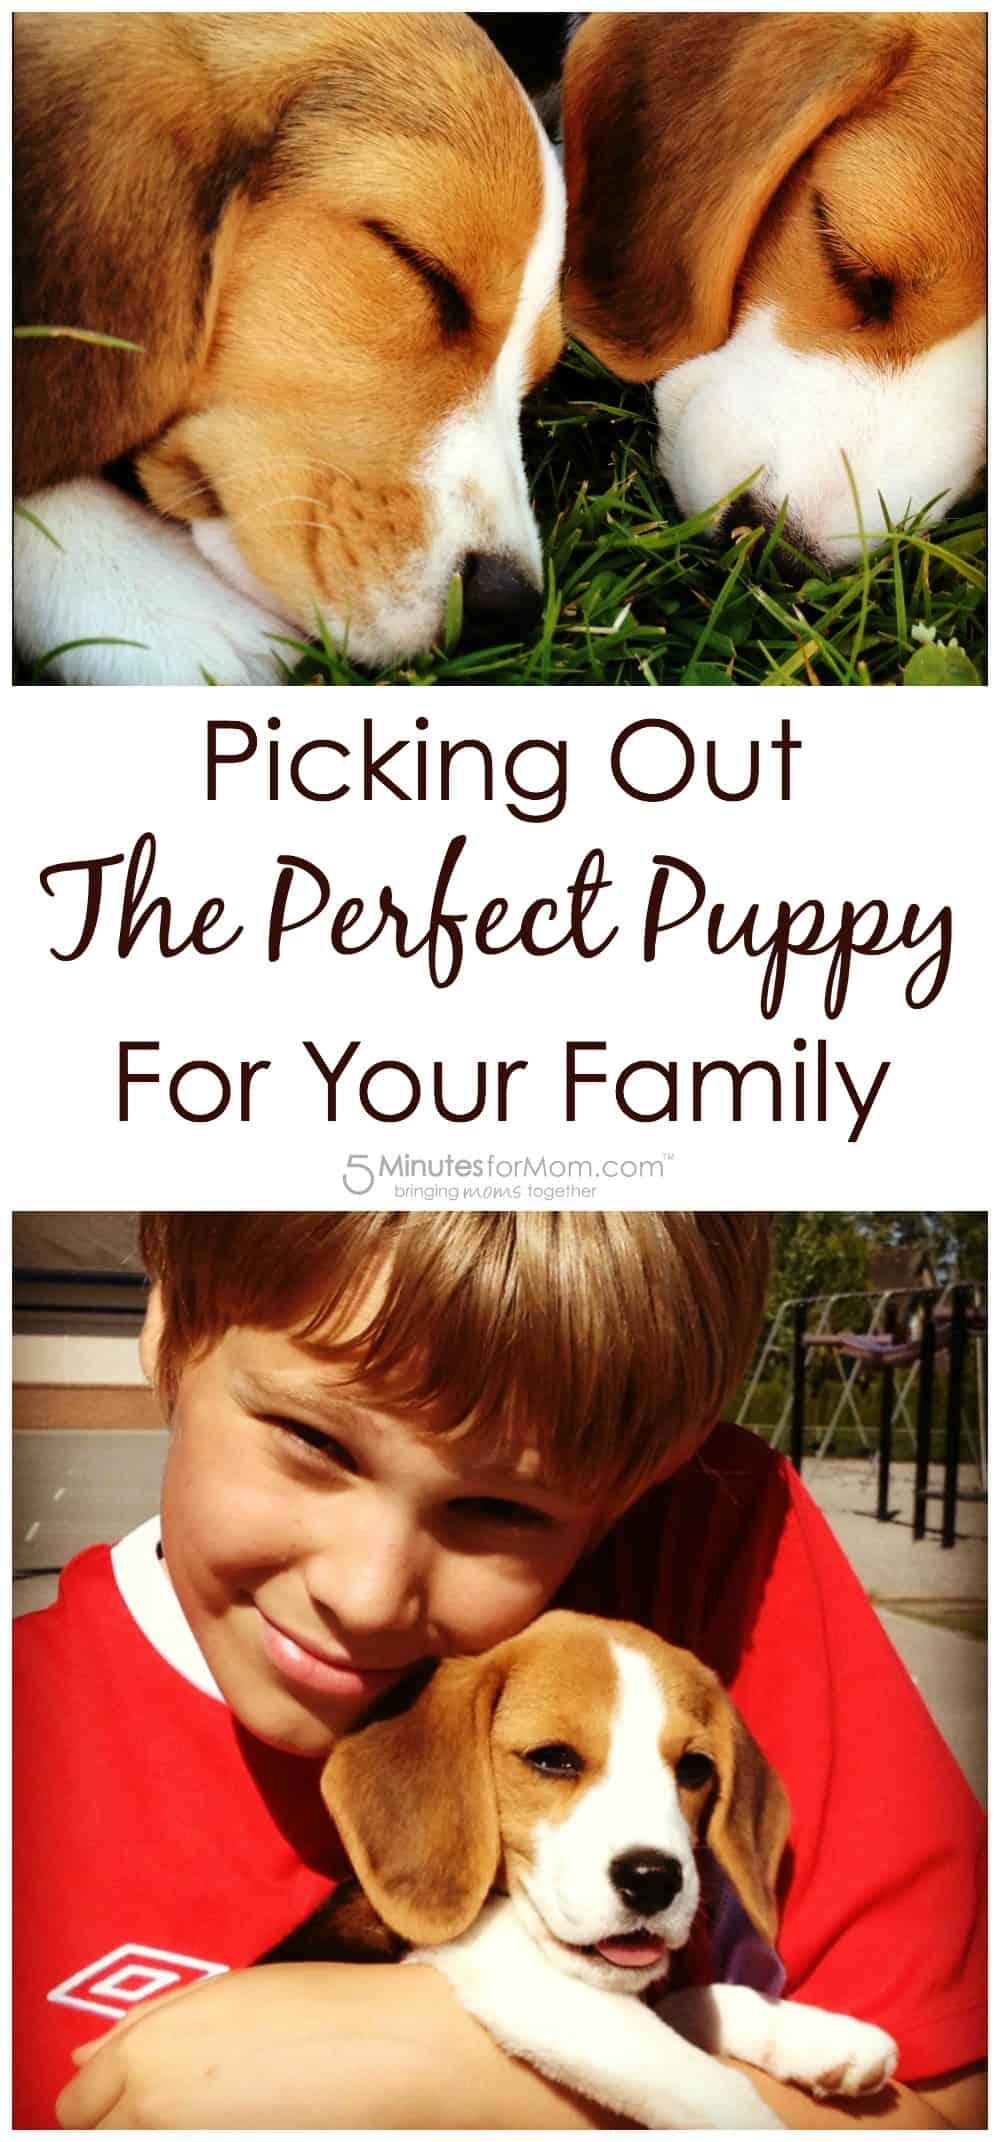 Picking out the perfect puppy for your family